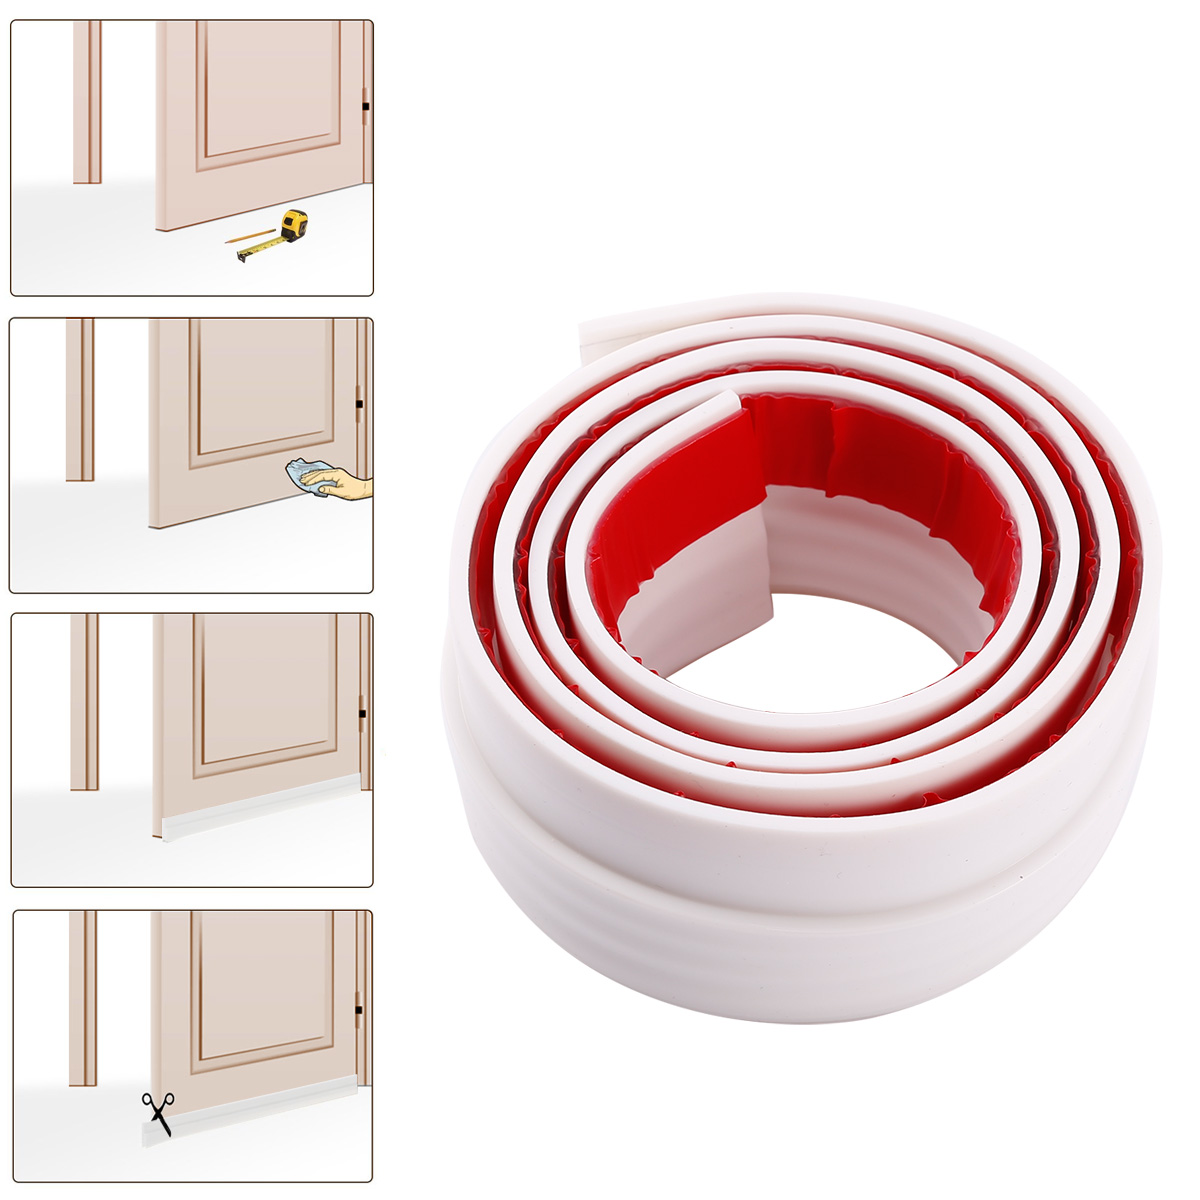 1m bas de porte adh sif silicone blanc bande d 39 tanch it anti bruit vent froid ebay. Black Bedroom Furniture Sets. Home Design Ideas